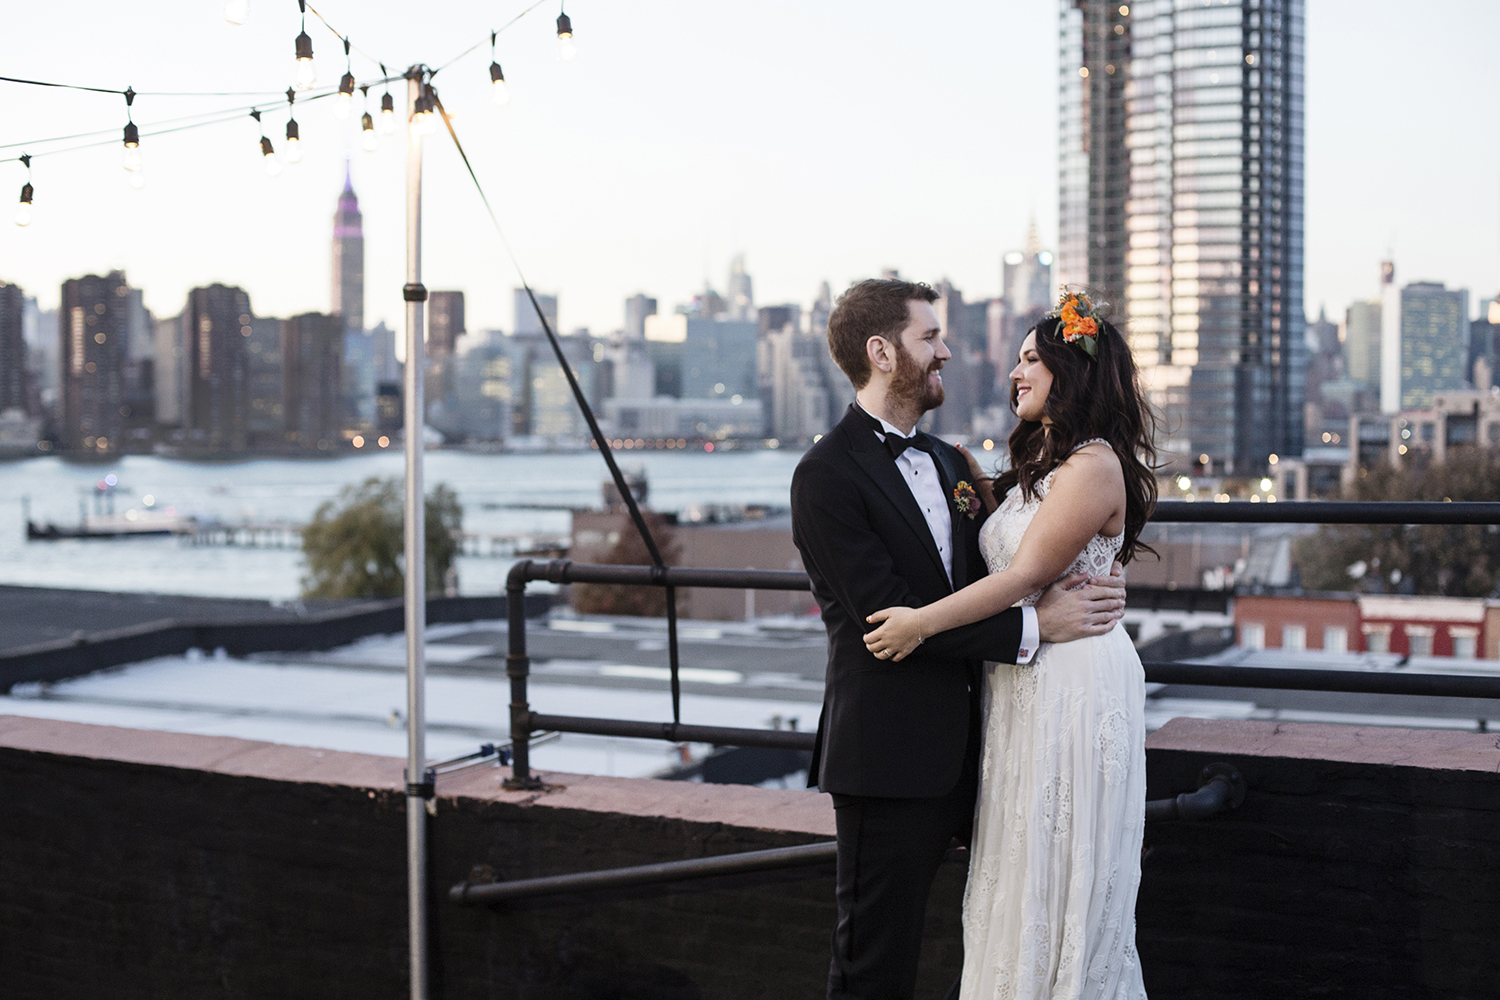 Unforgettable New York wedding